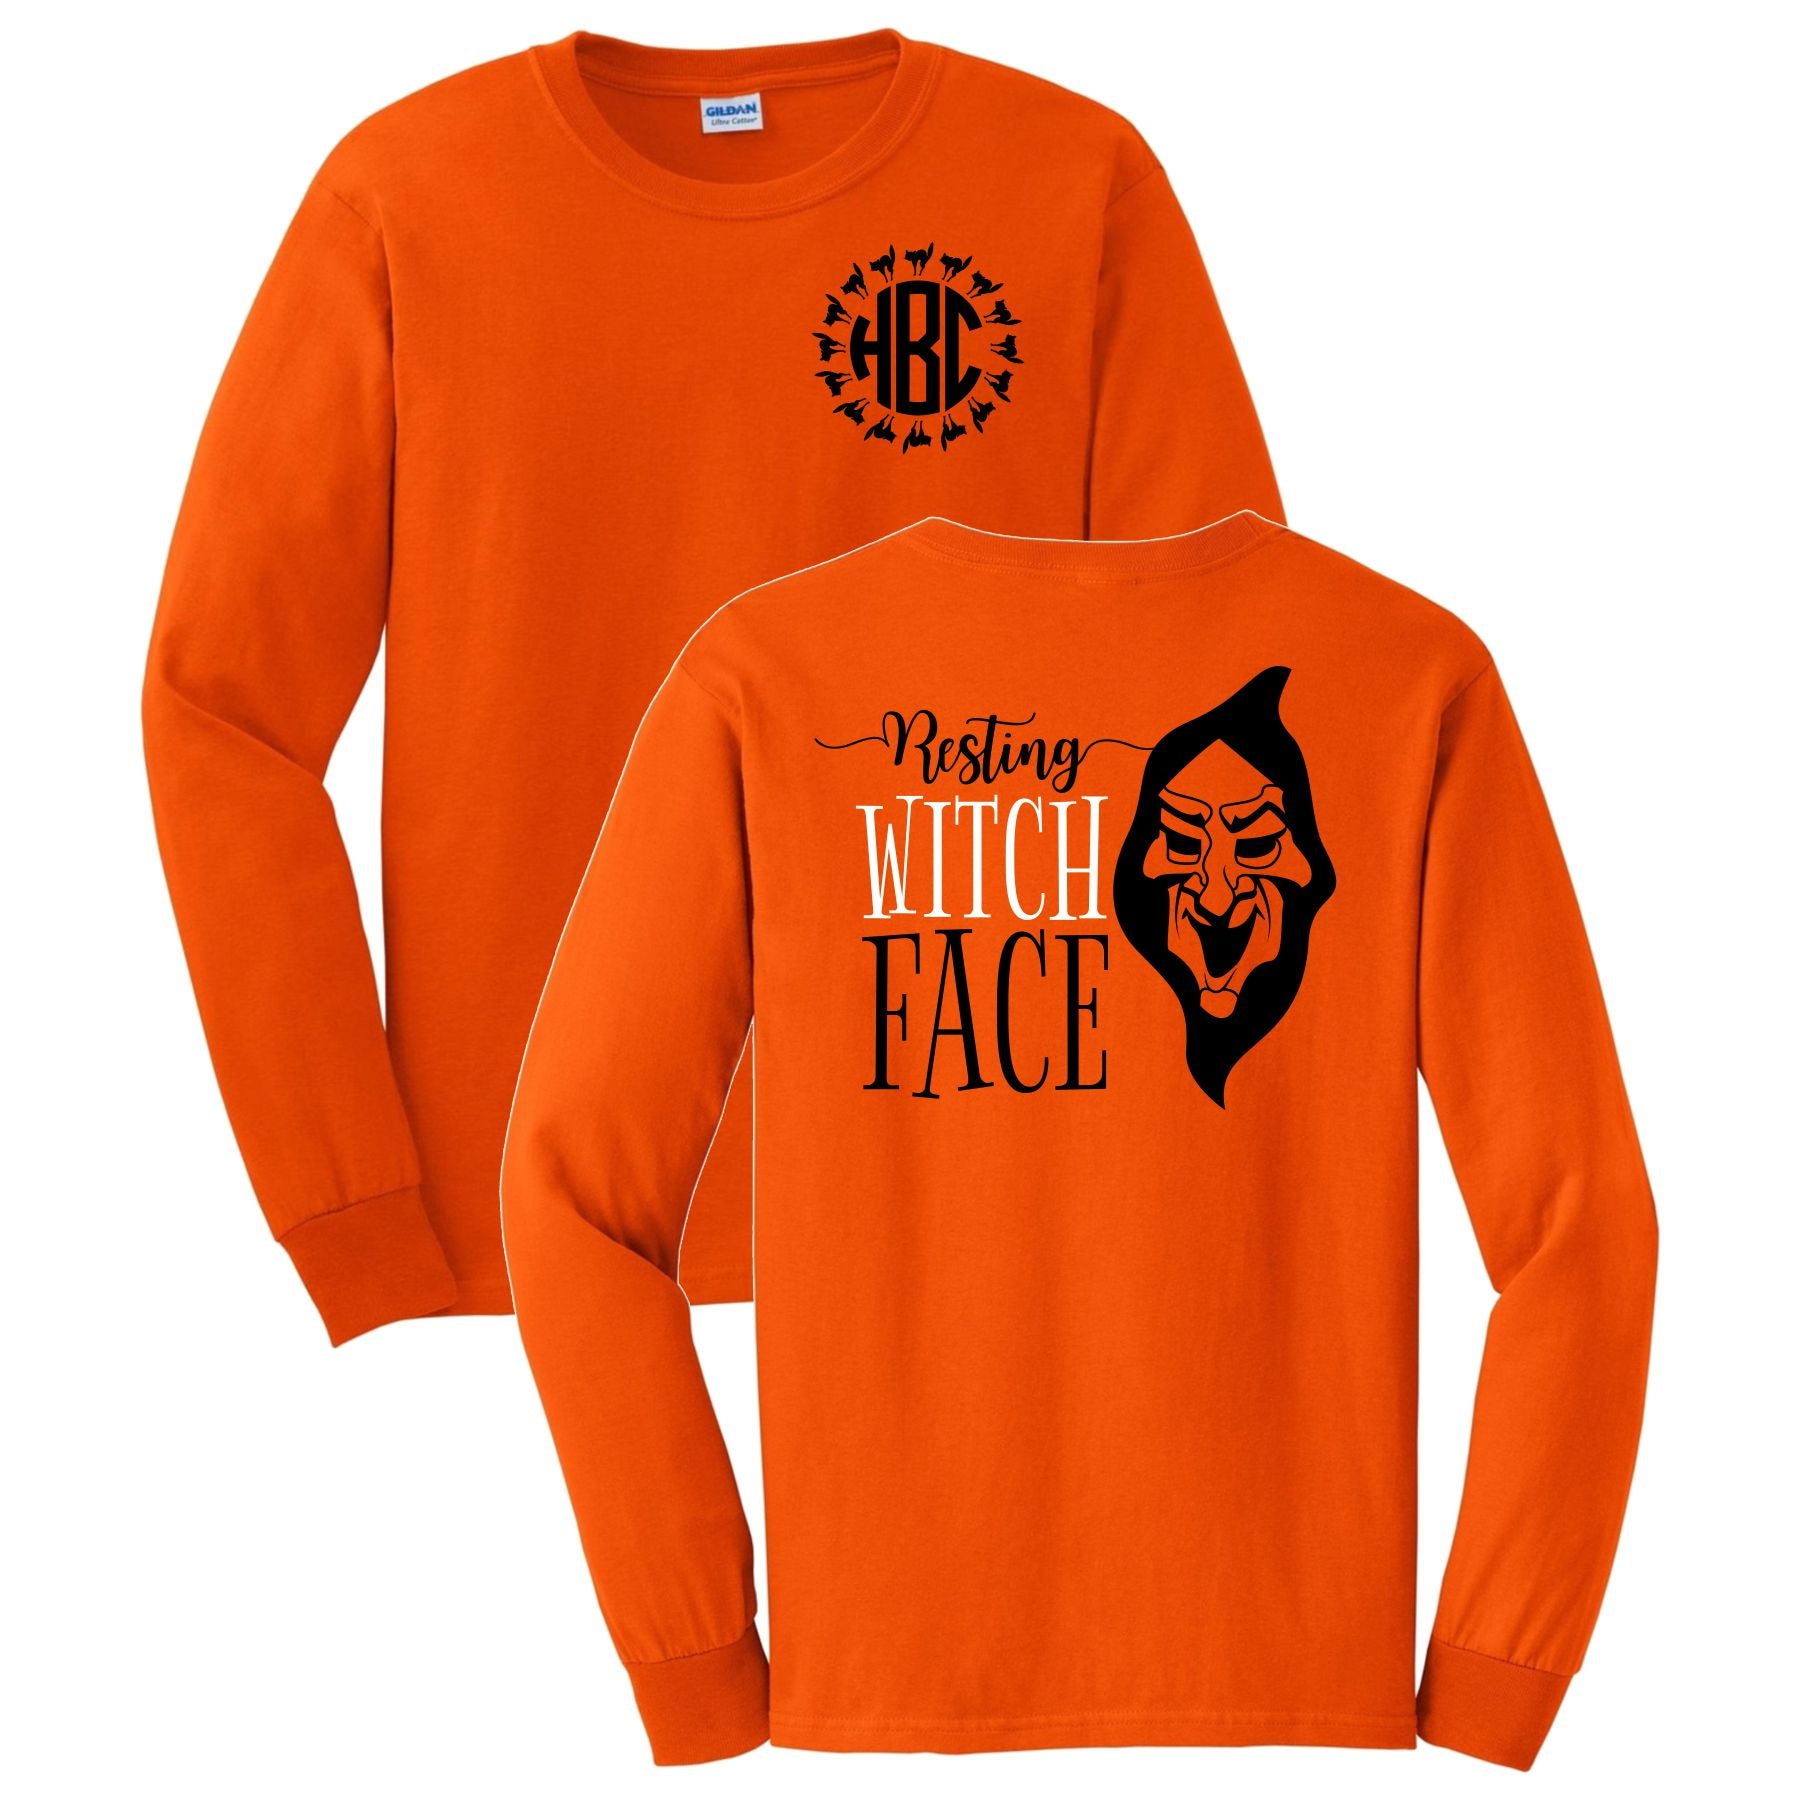 Resting Witch Face Long Sleeve Shirt